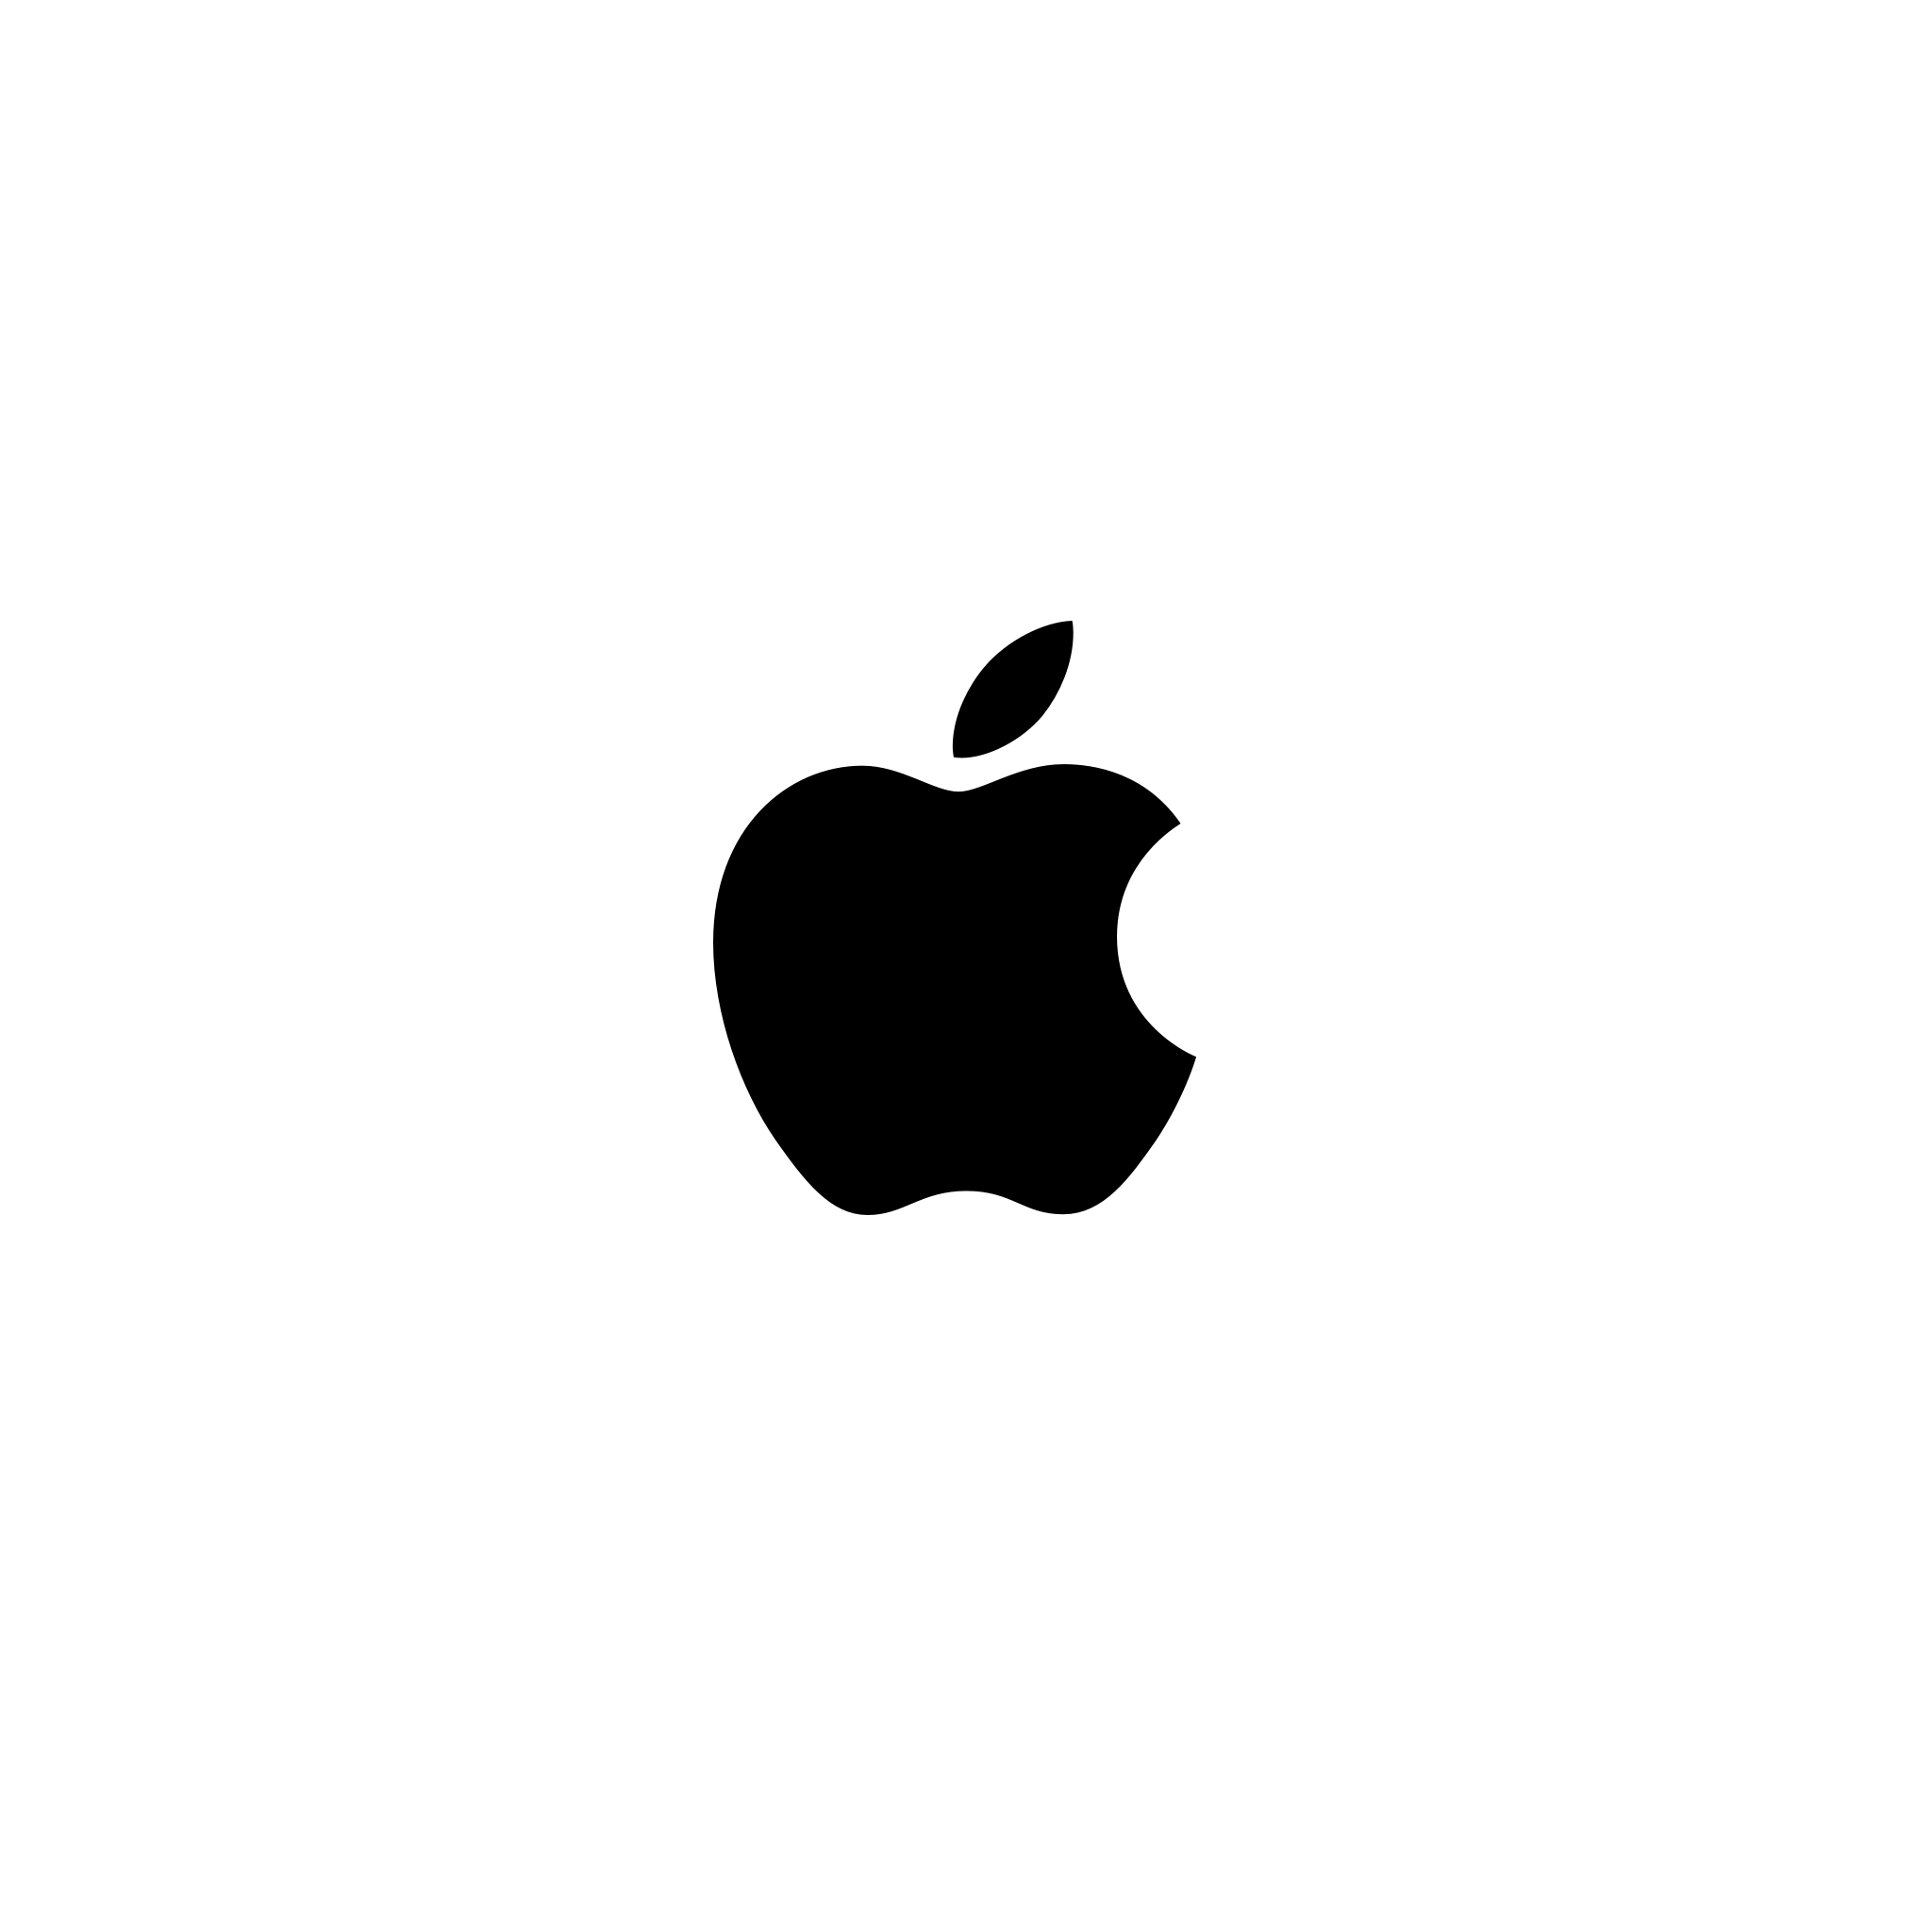 Apple — Think different